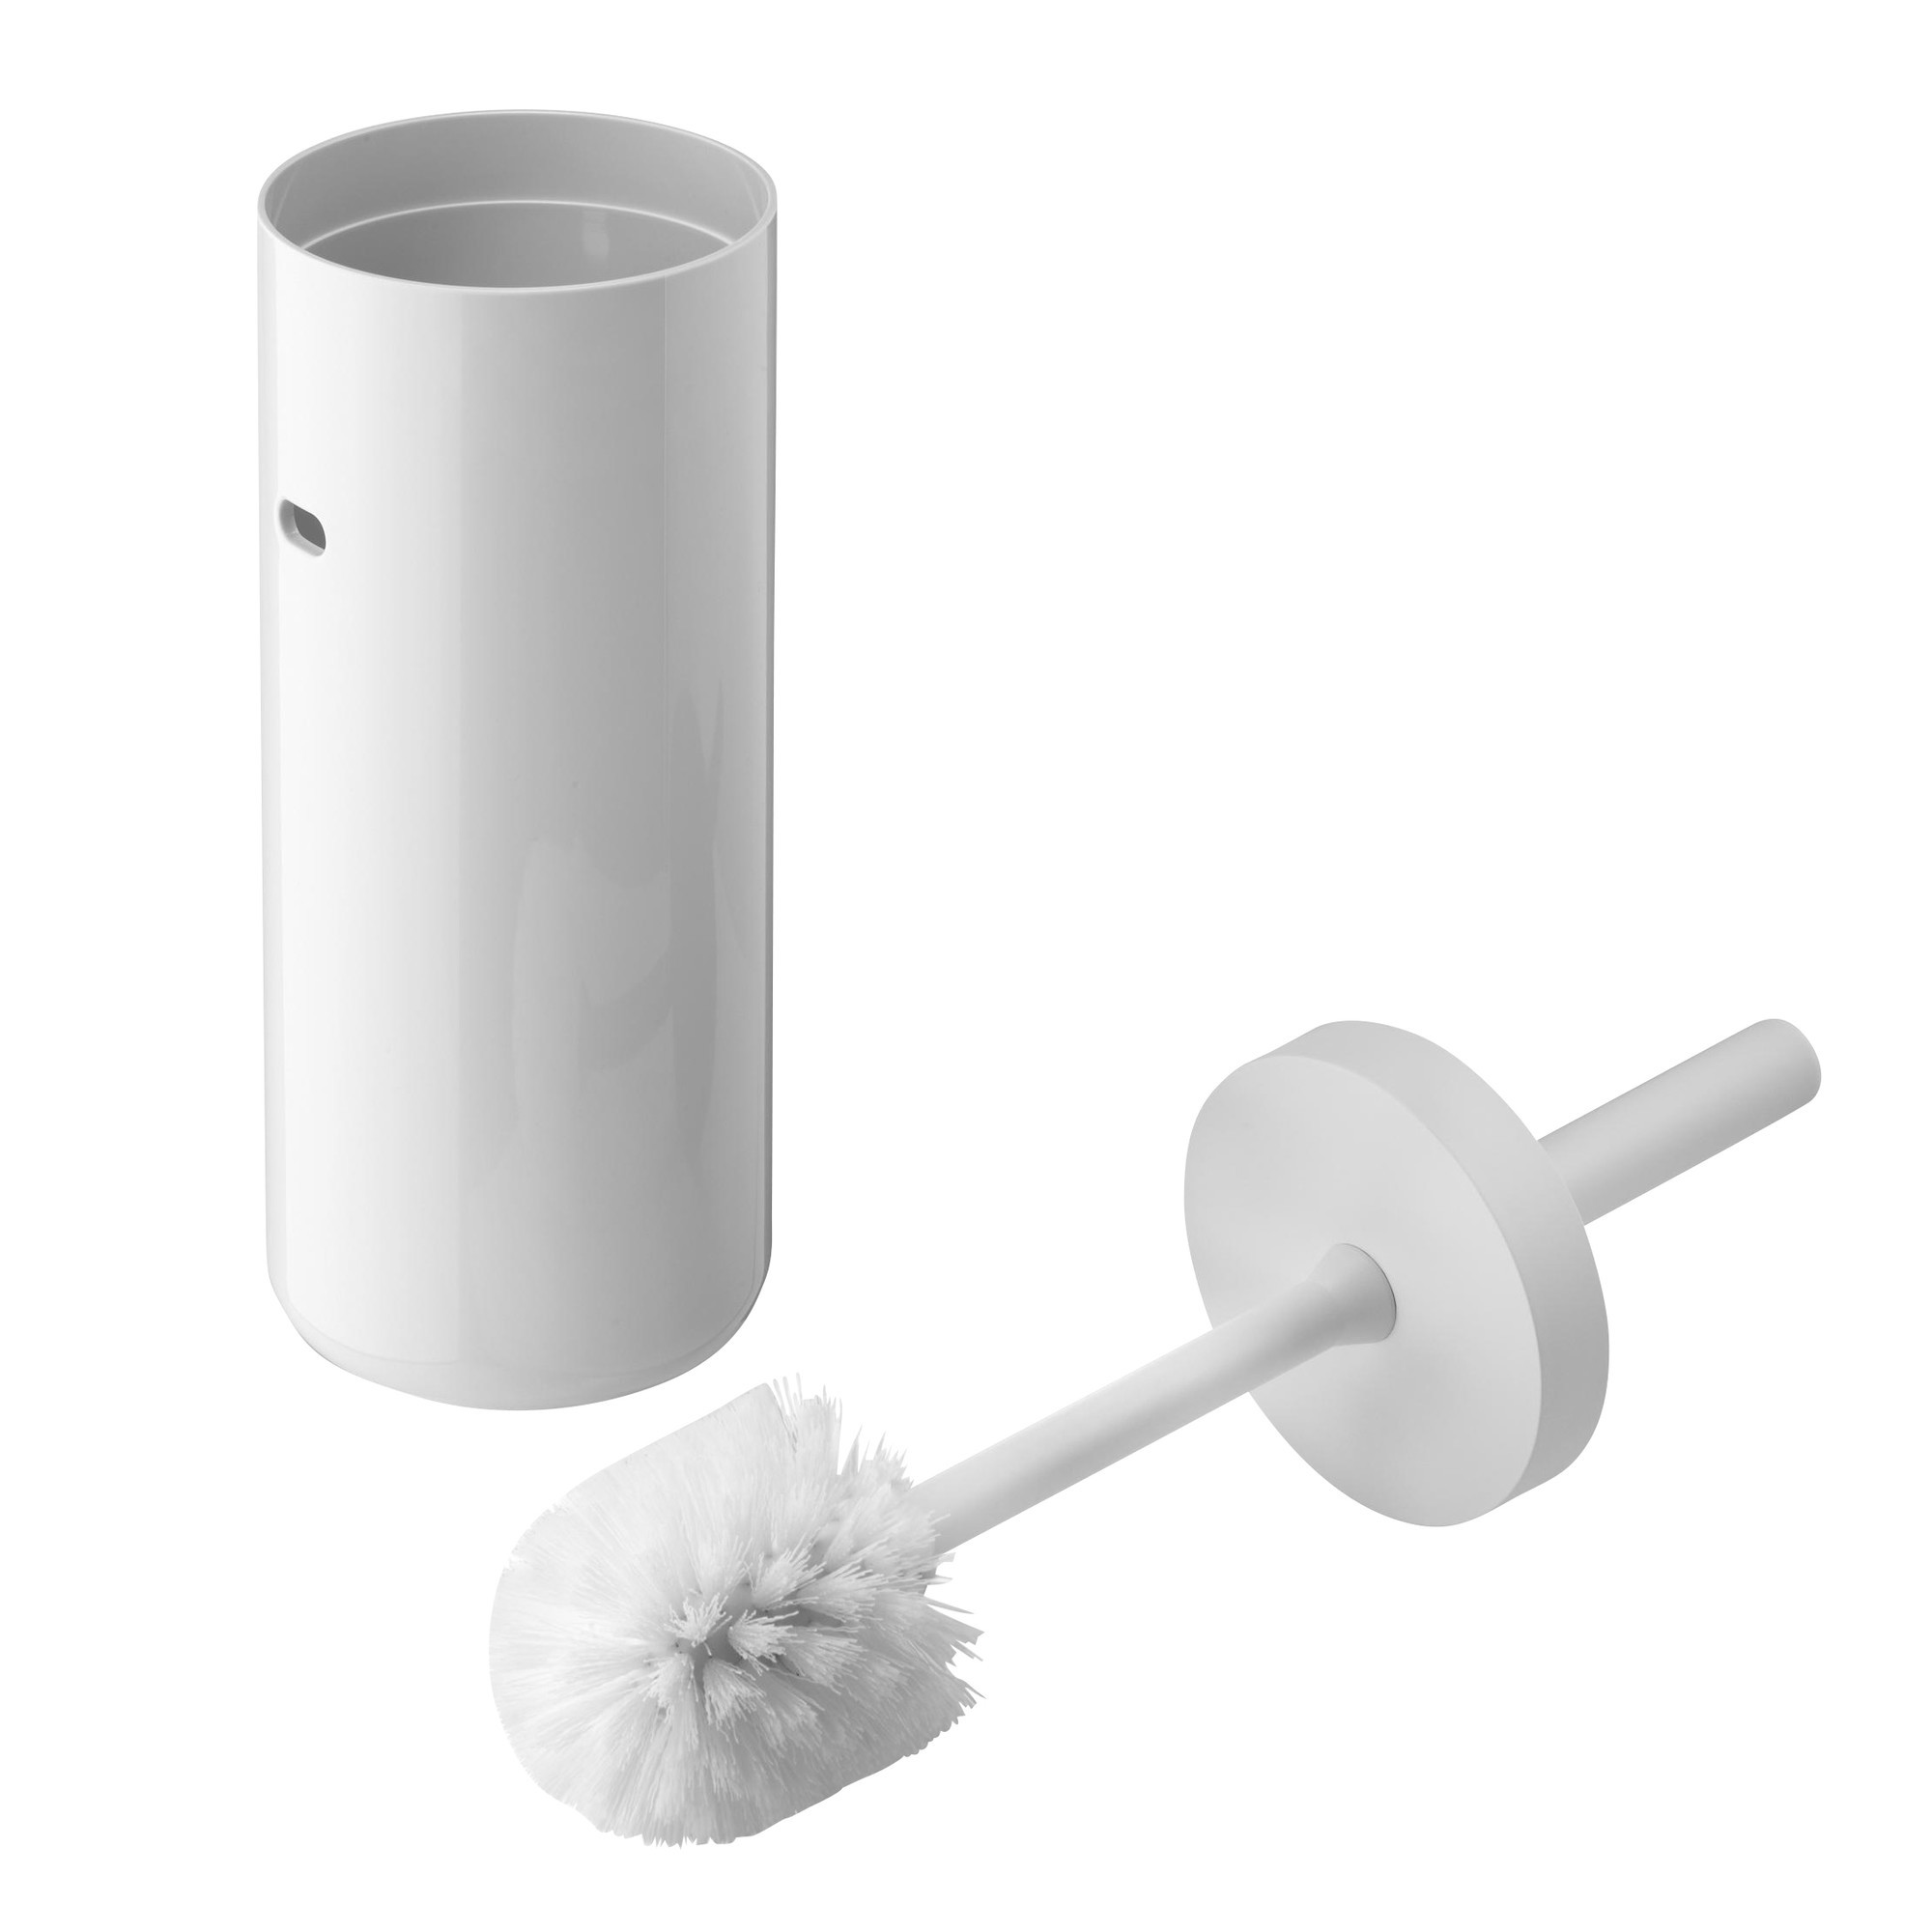 Design Wc Bürste Lunar Toilet Brush